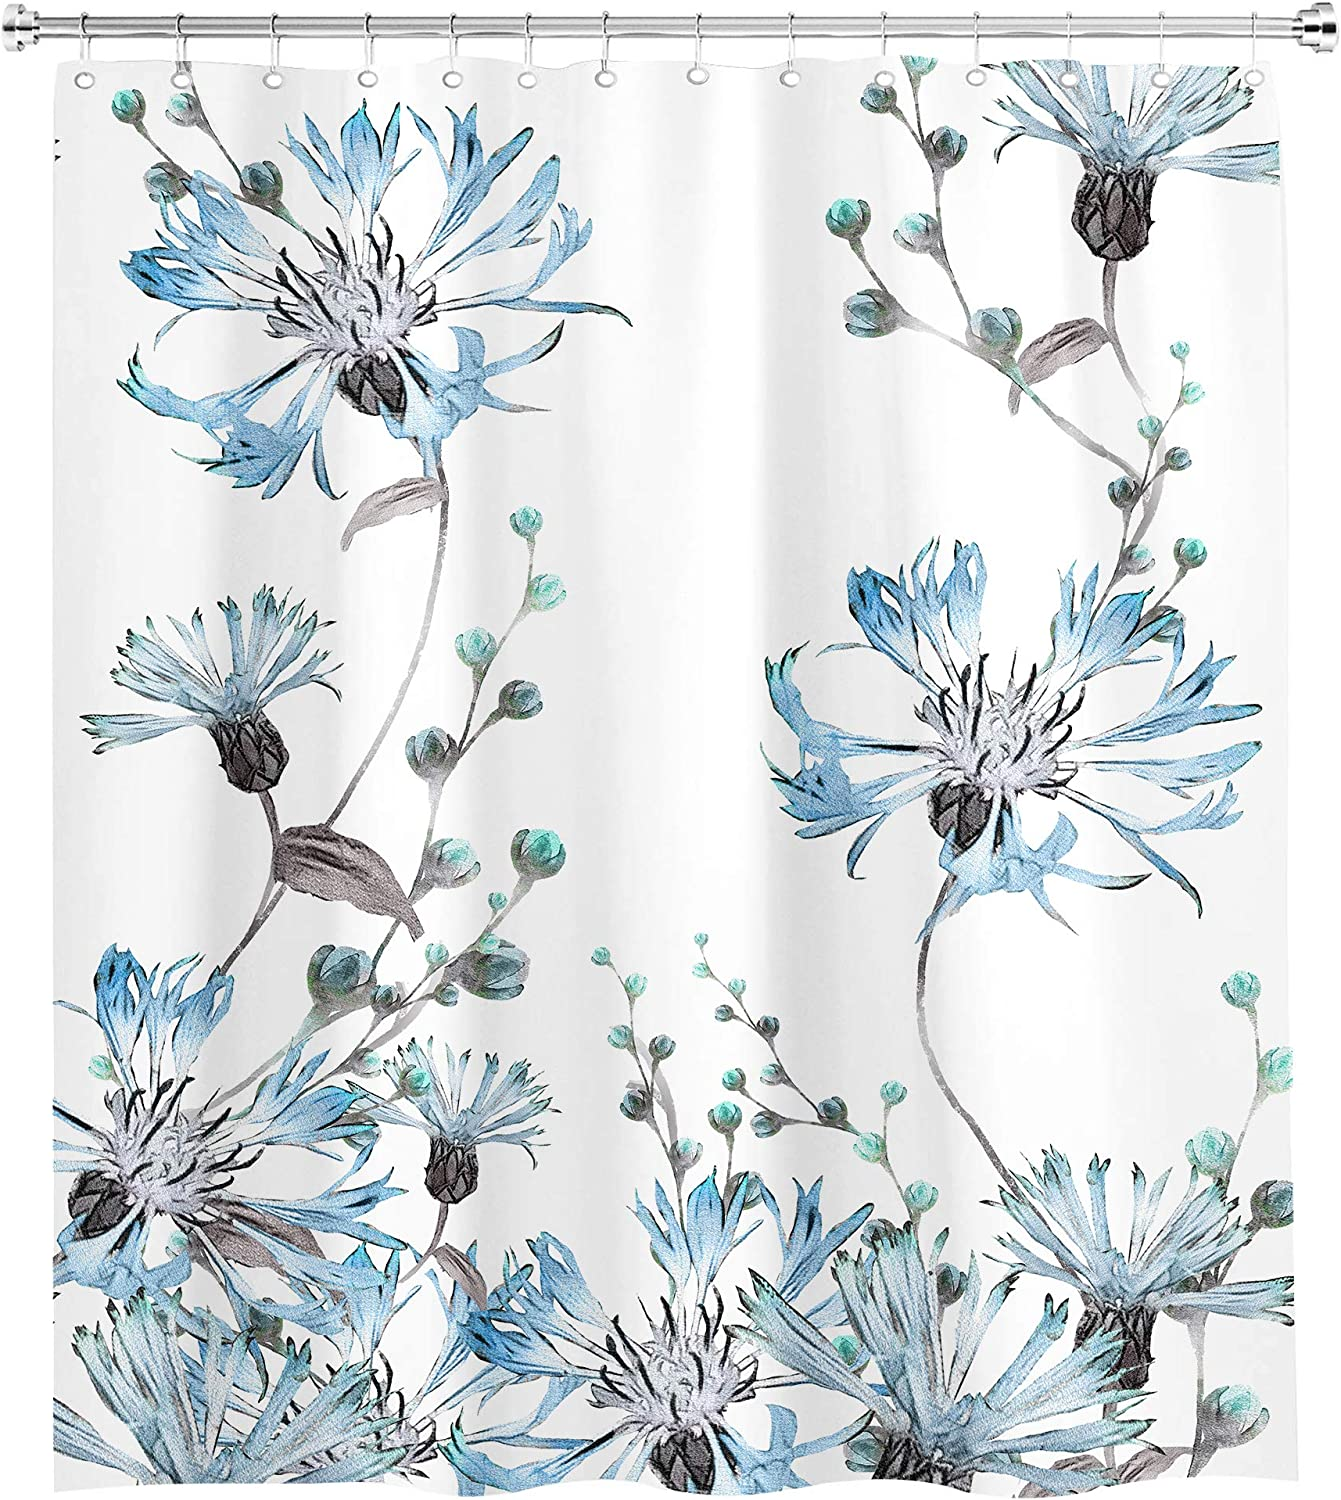 SVBright Turquoise Plant Gray and Blue Flower Watercolor Shower Curtain Floral Spring Blossom Leaves 60Wx72L Inch Garden 12 Pack Hooks Polyester Waterproof Fabric Bathroom Bathtub Panels